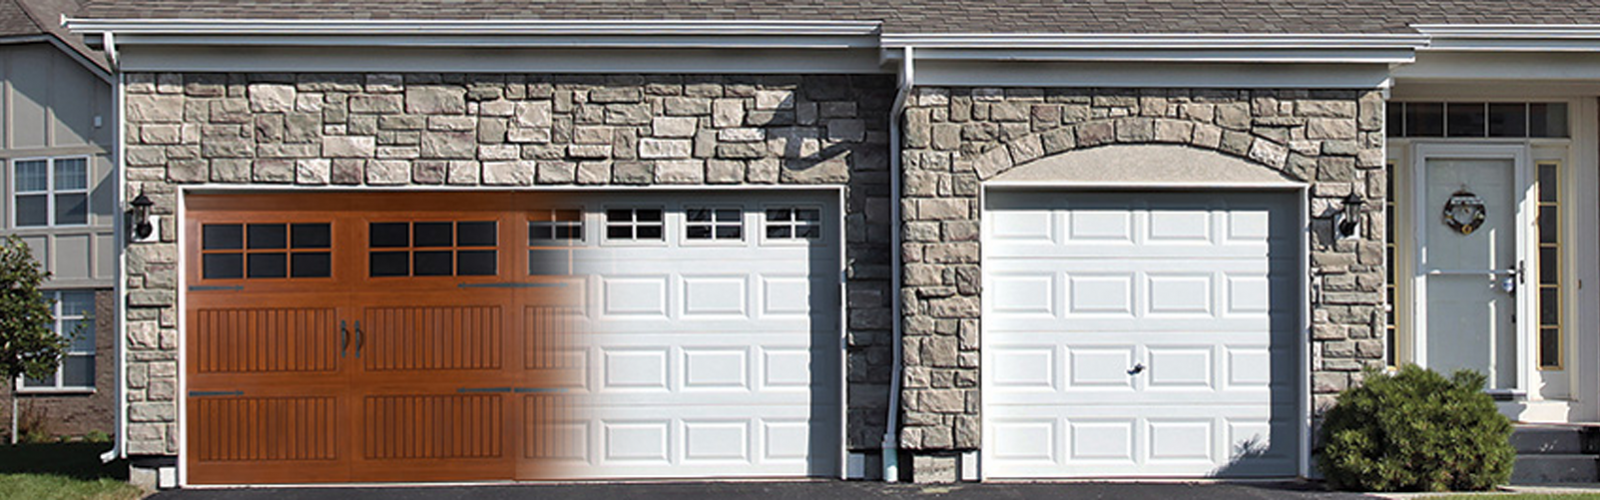 overhead door company of houston houston garage door